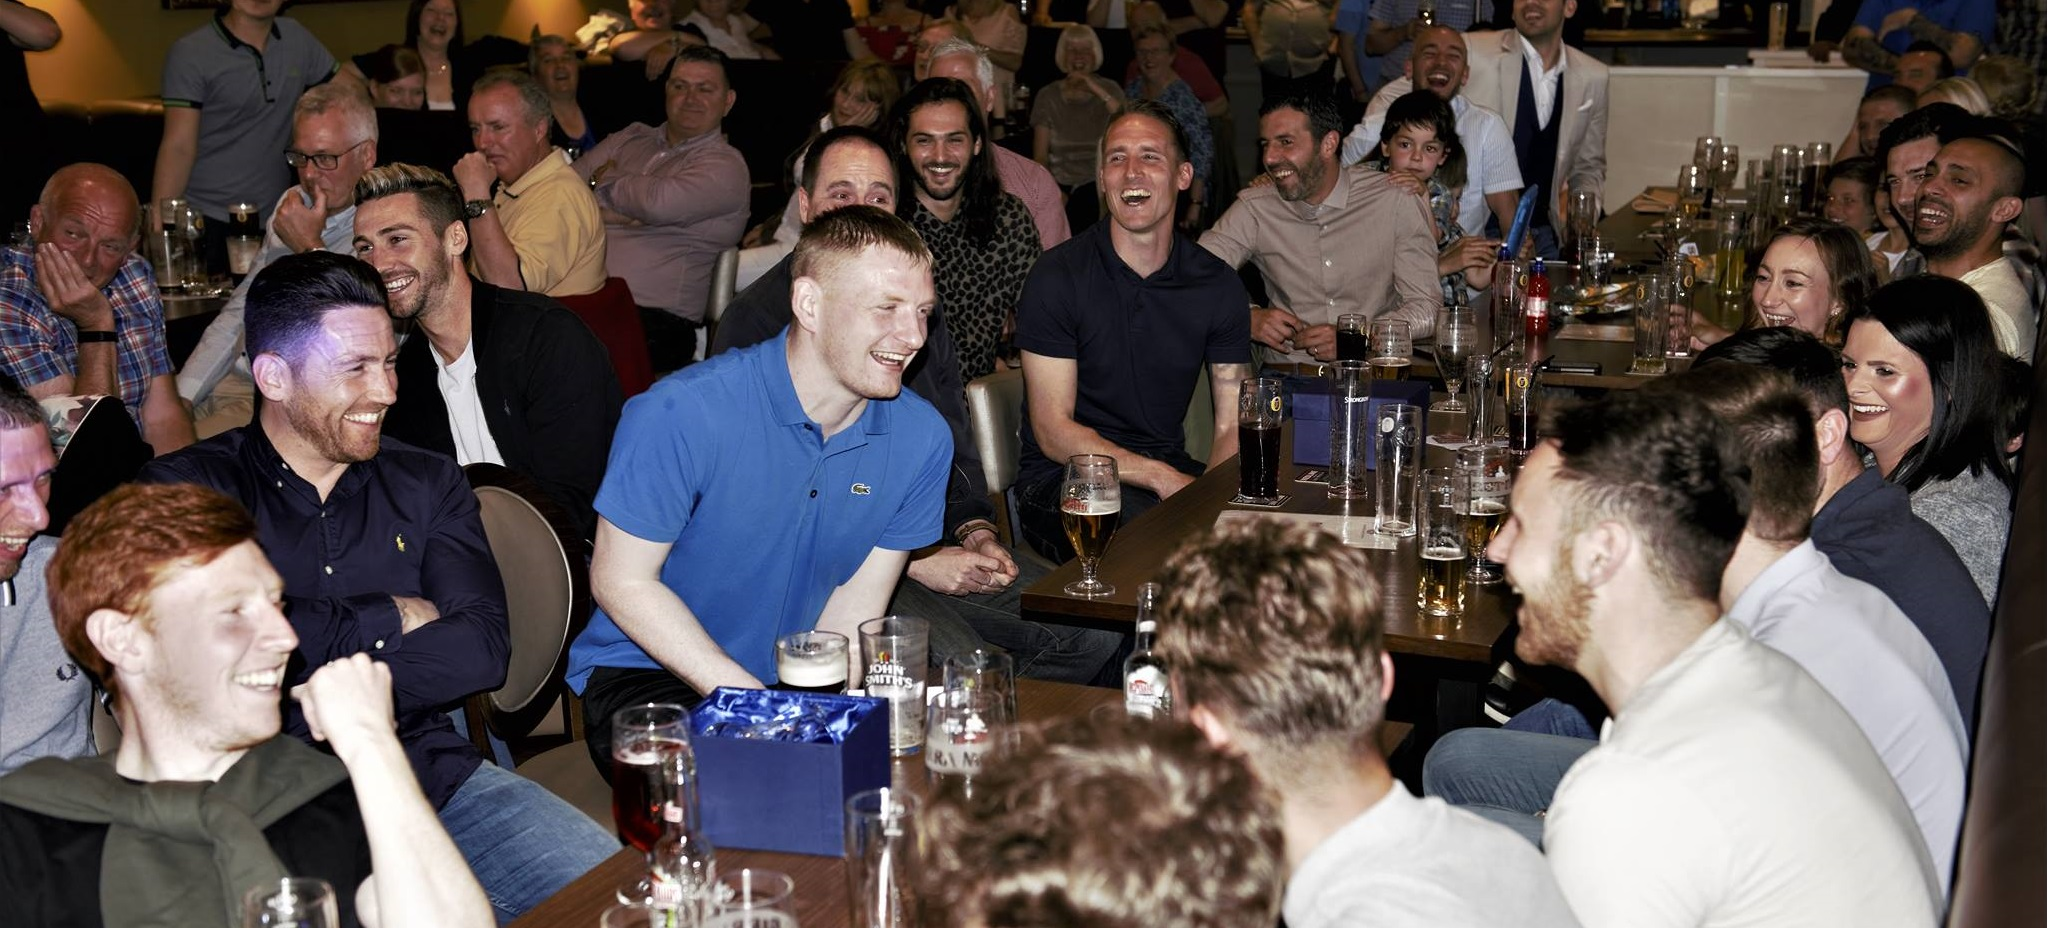 Players' Presentation night: Special season is recognised